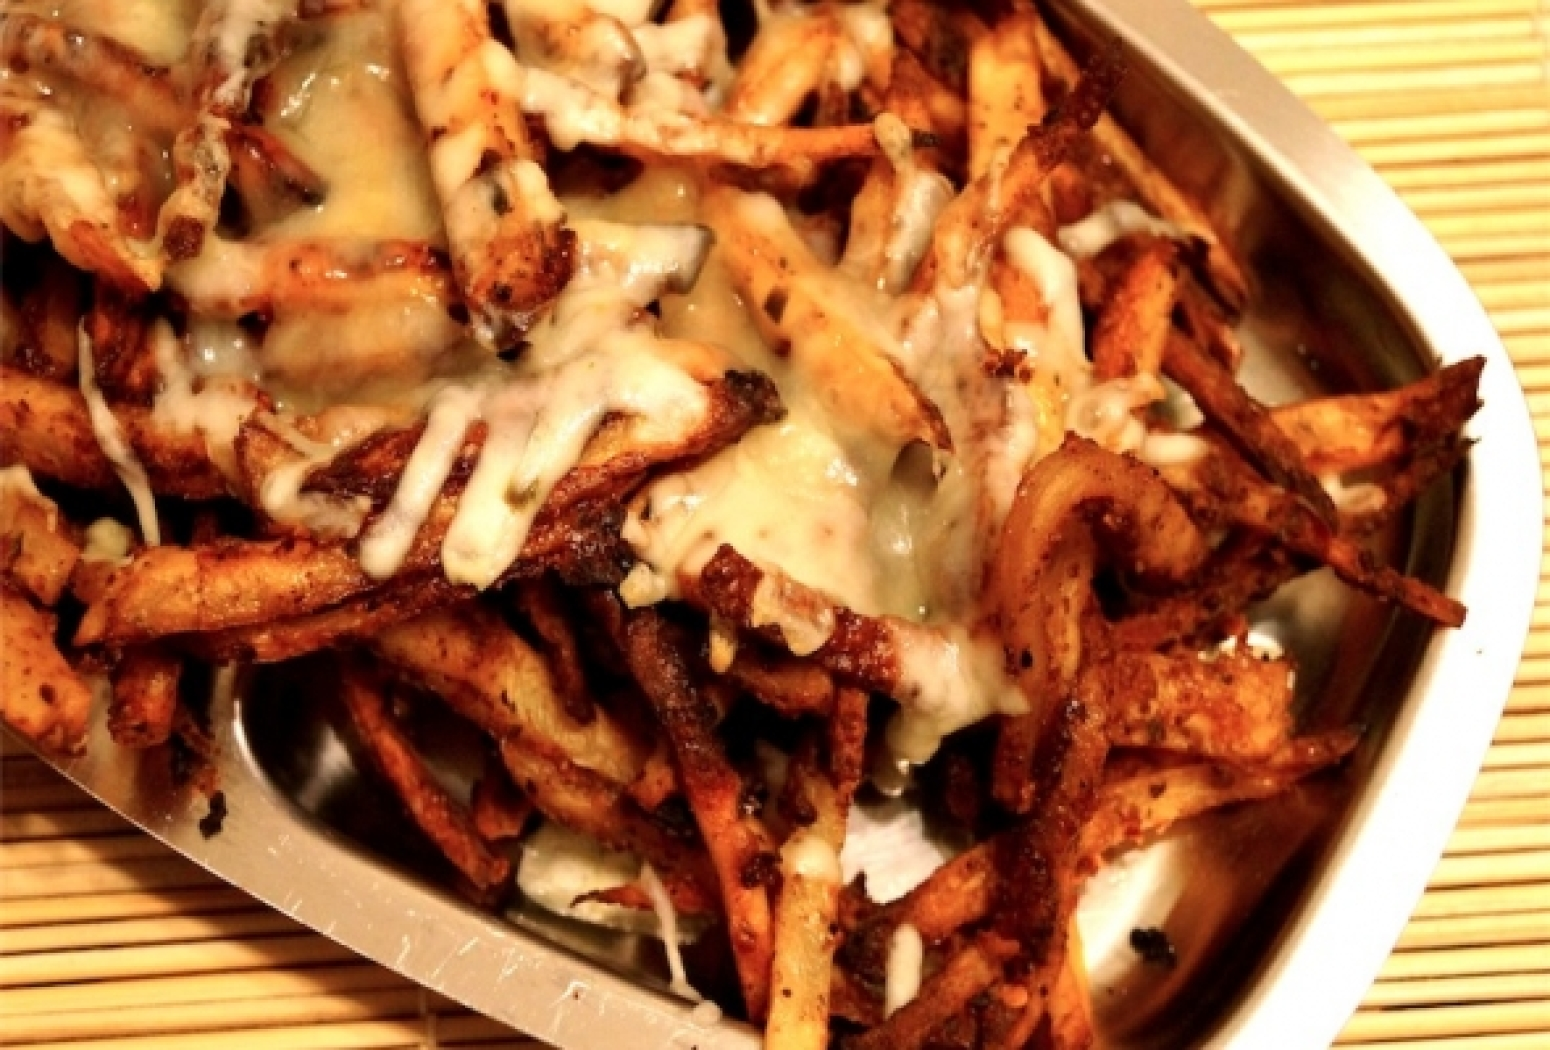 Baked Chili Cheese Fries Recipe 2 | Just A Pinch Recipes